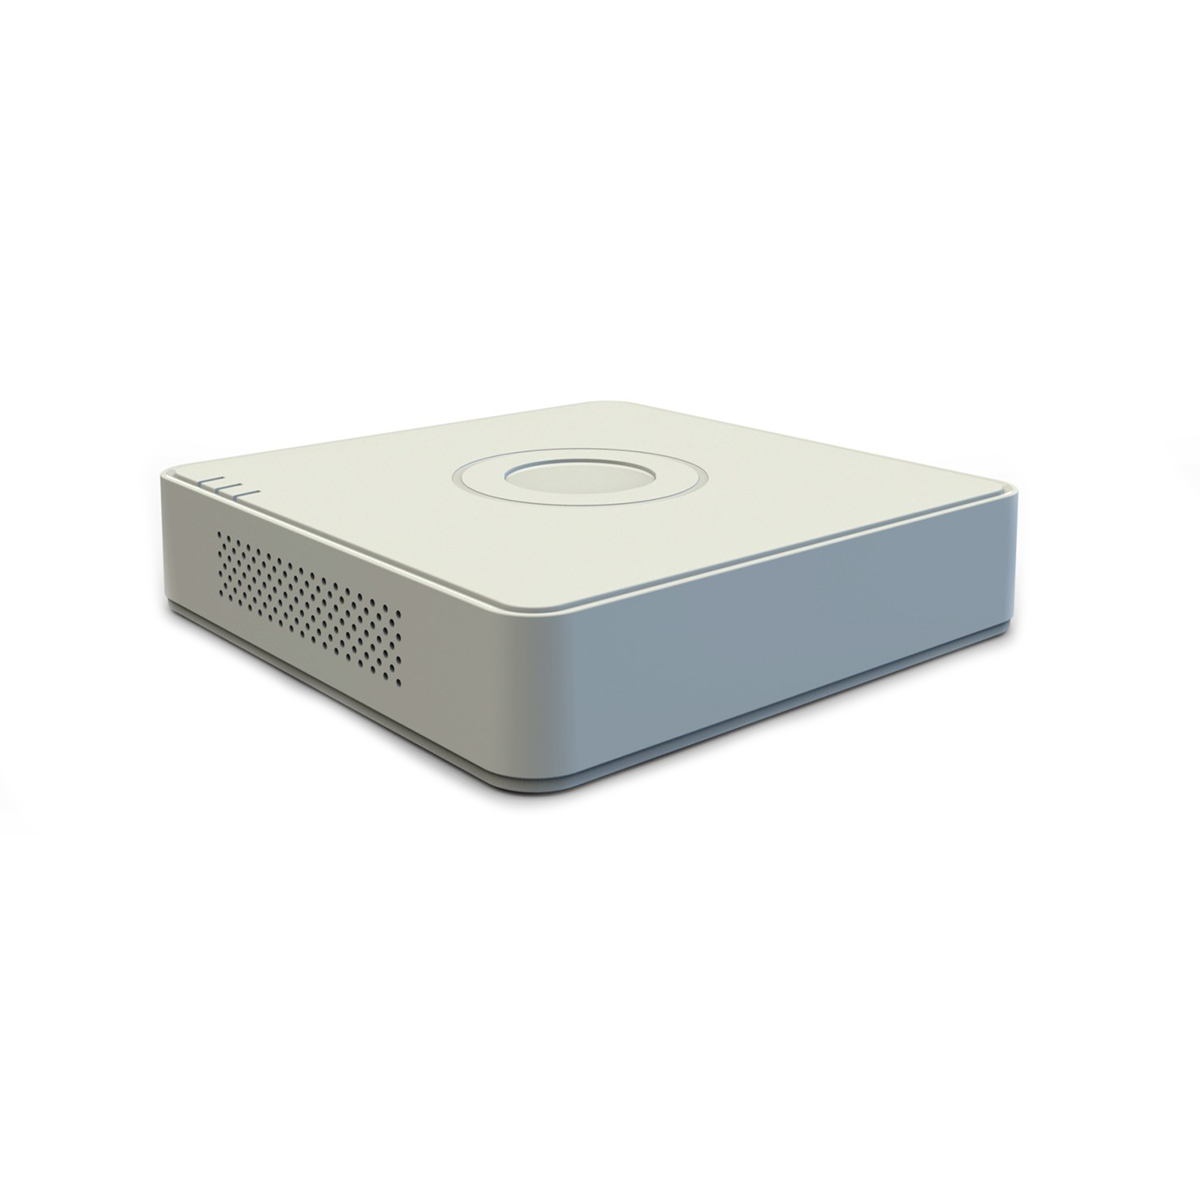 Hikvision 16-Channel Embedded Mini NVR | DS-7116NI-SN